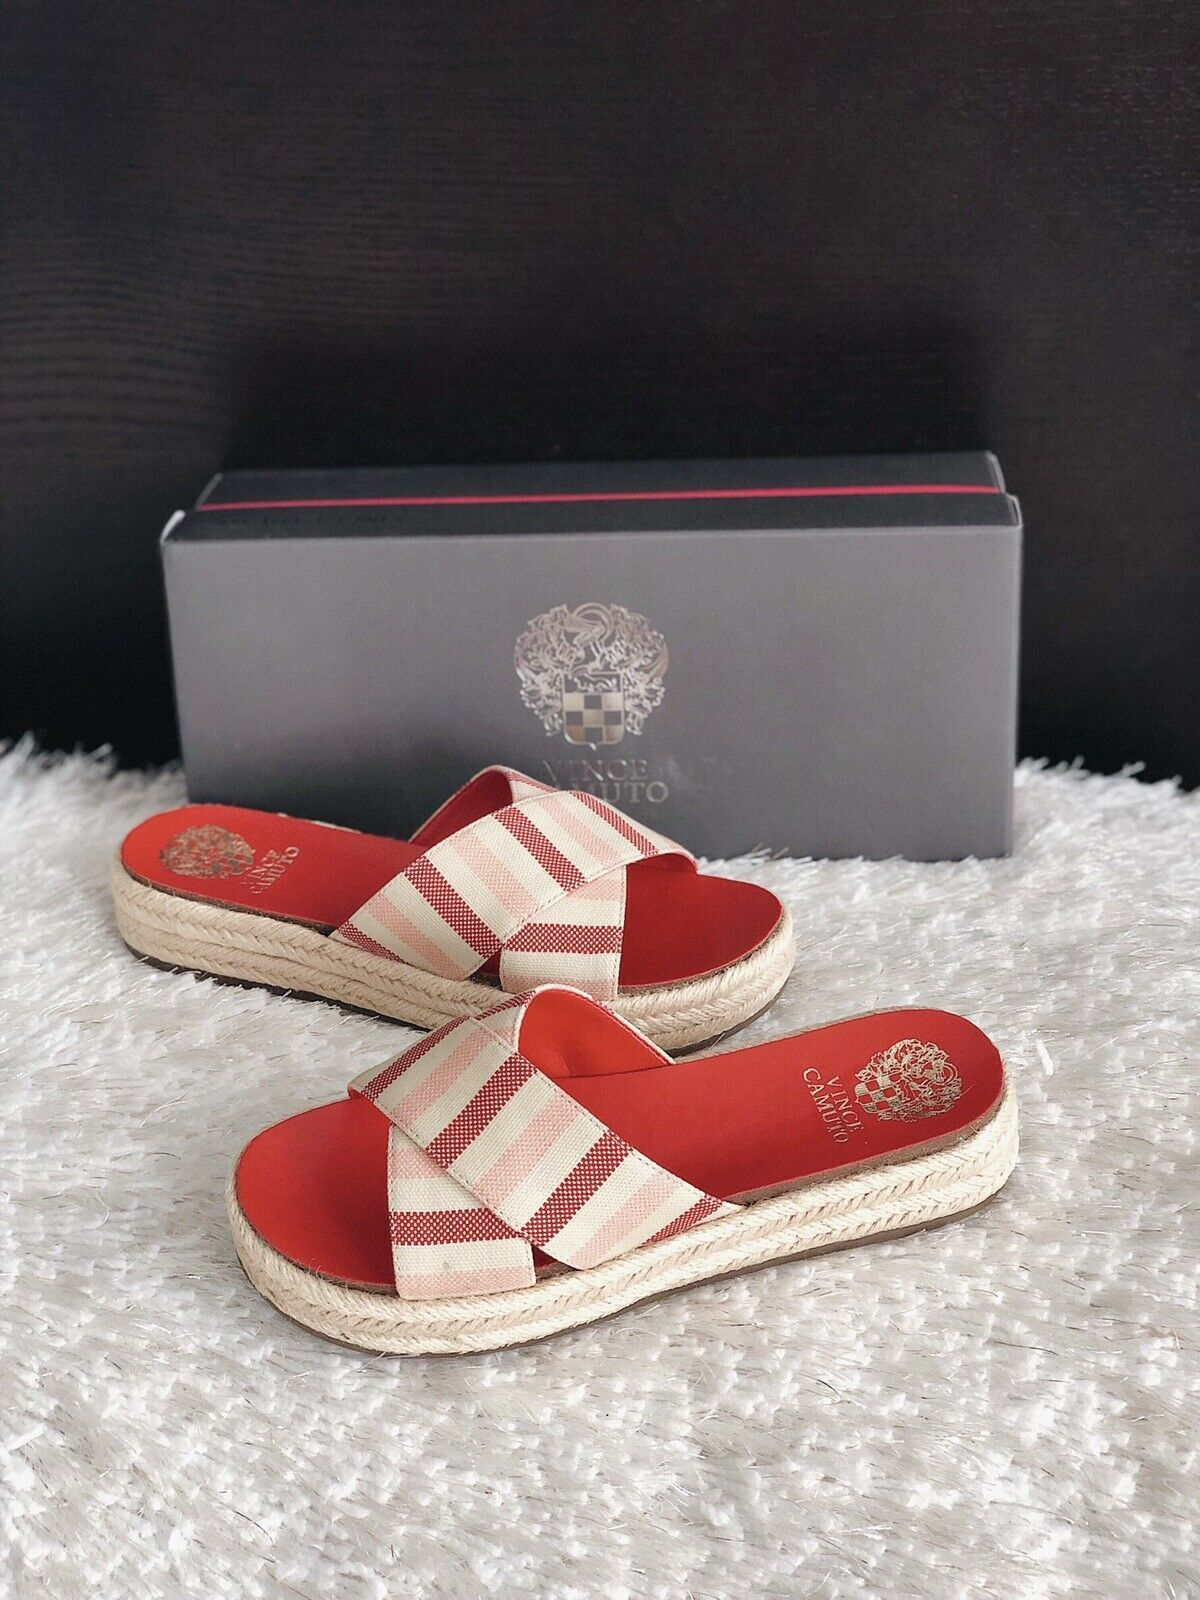 Primary image for ✨New VINCE CAMUTO Carran Platform Slide Sandals Red Stripe Women Size 7.5M $89